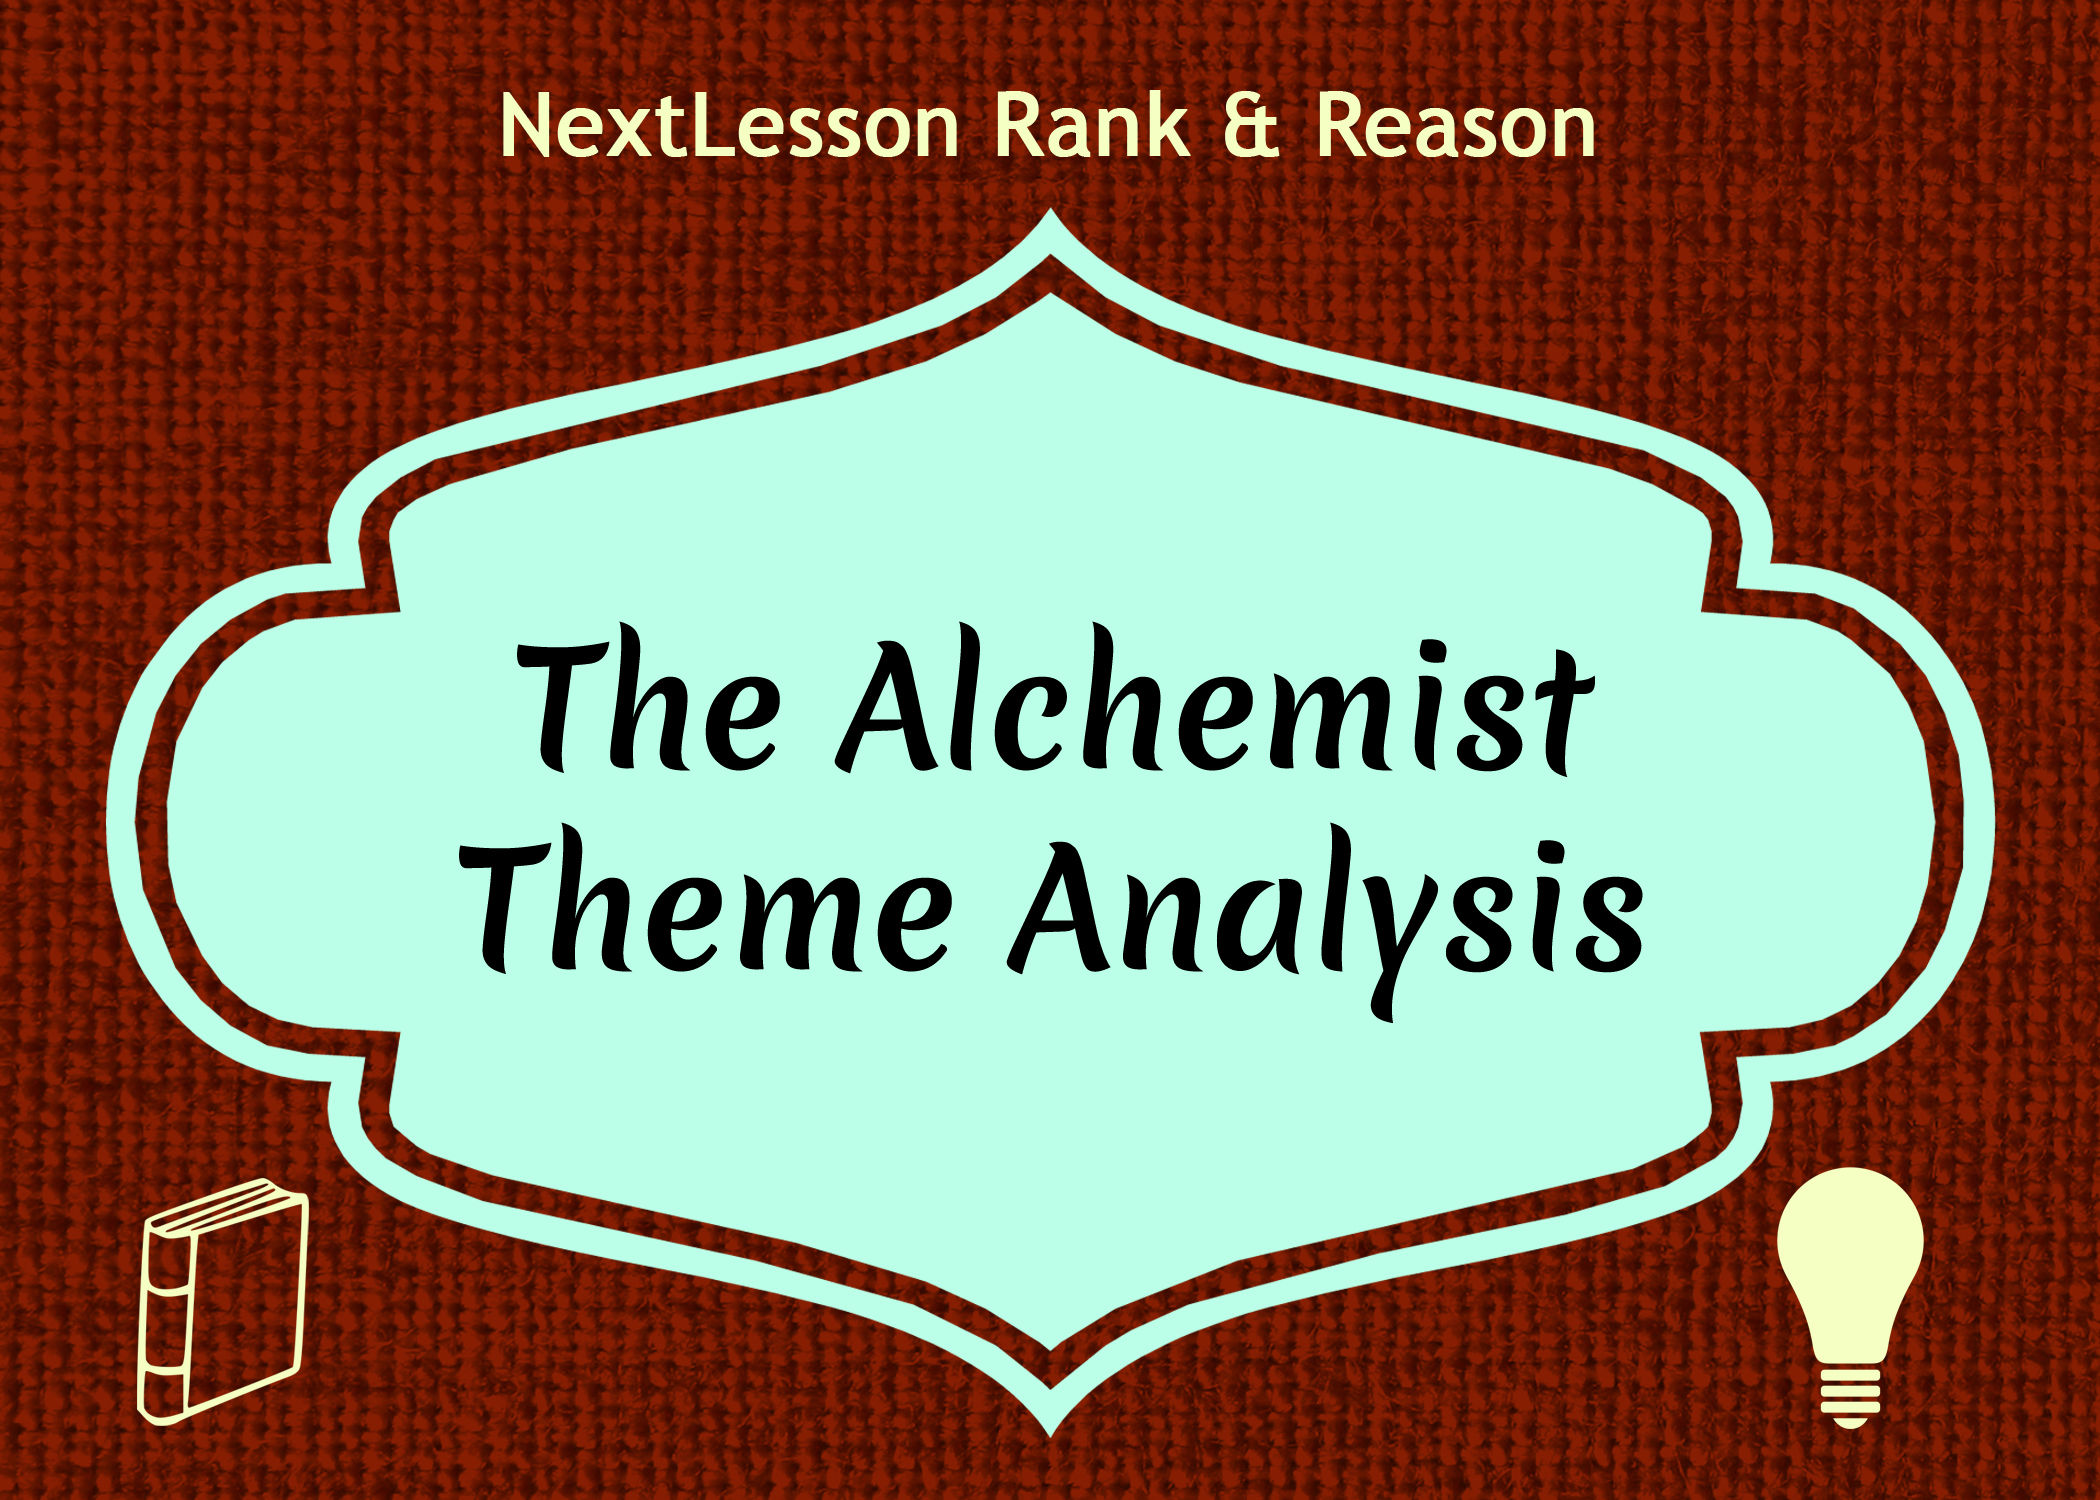 the alchemist theme analysis nextlesson the alchemist theme analysis